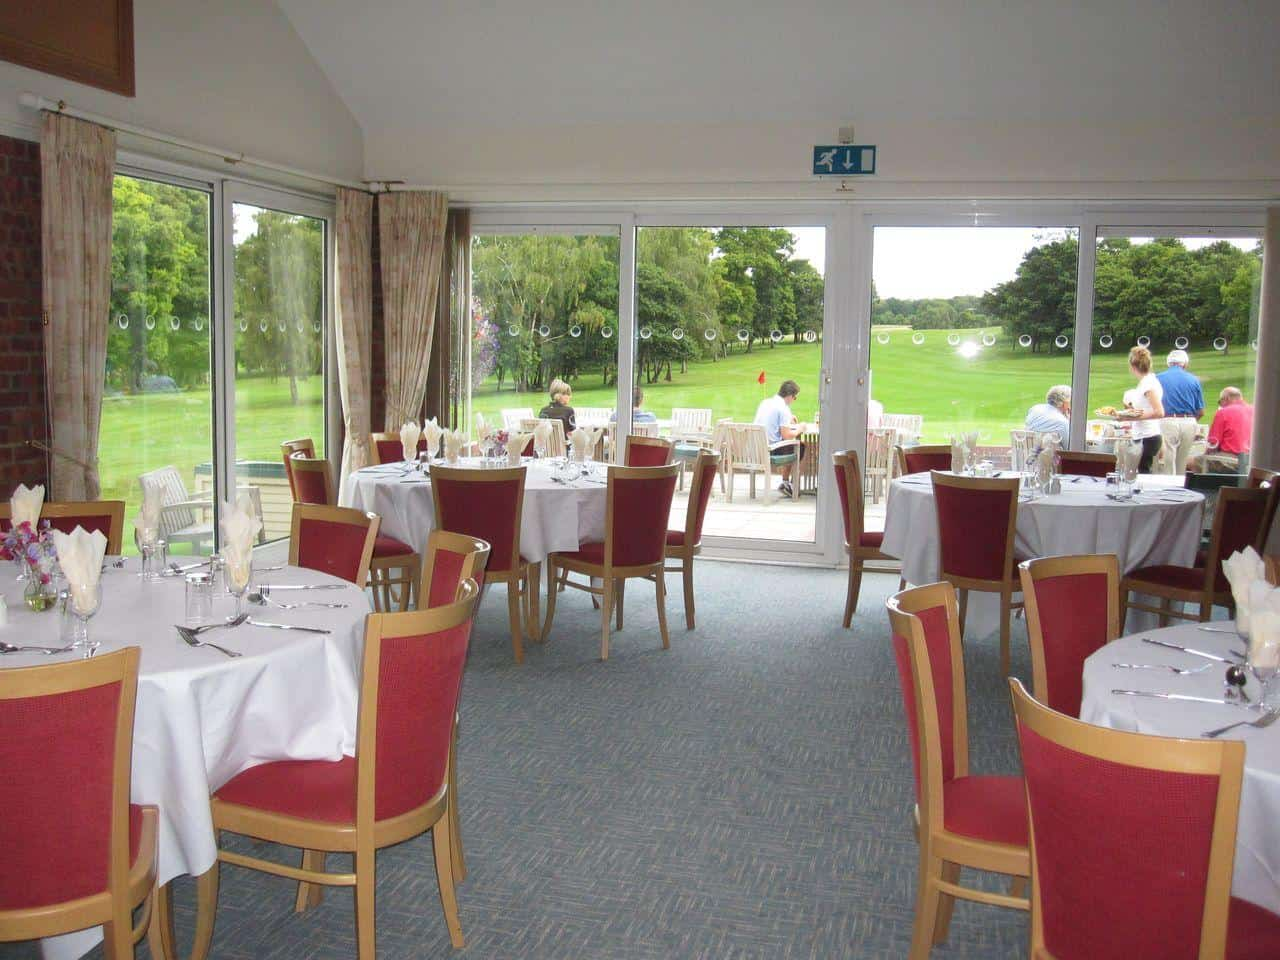 Restaurant with View to 18th Green and Fairway